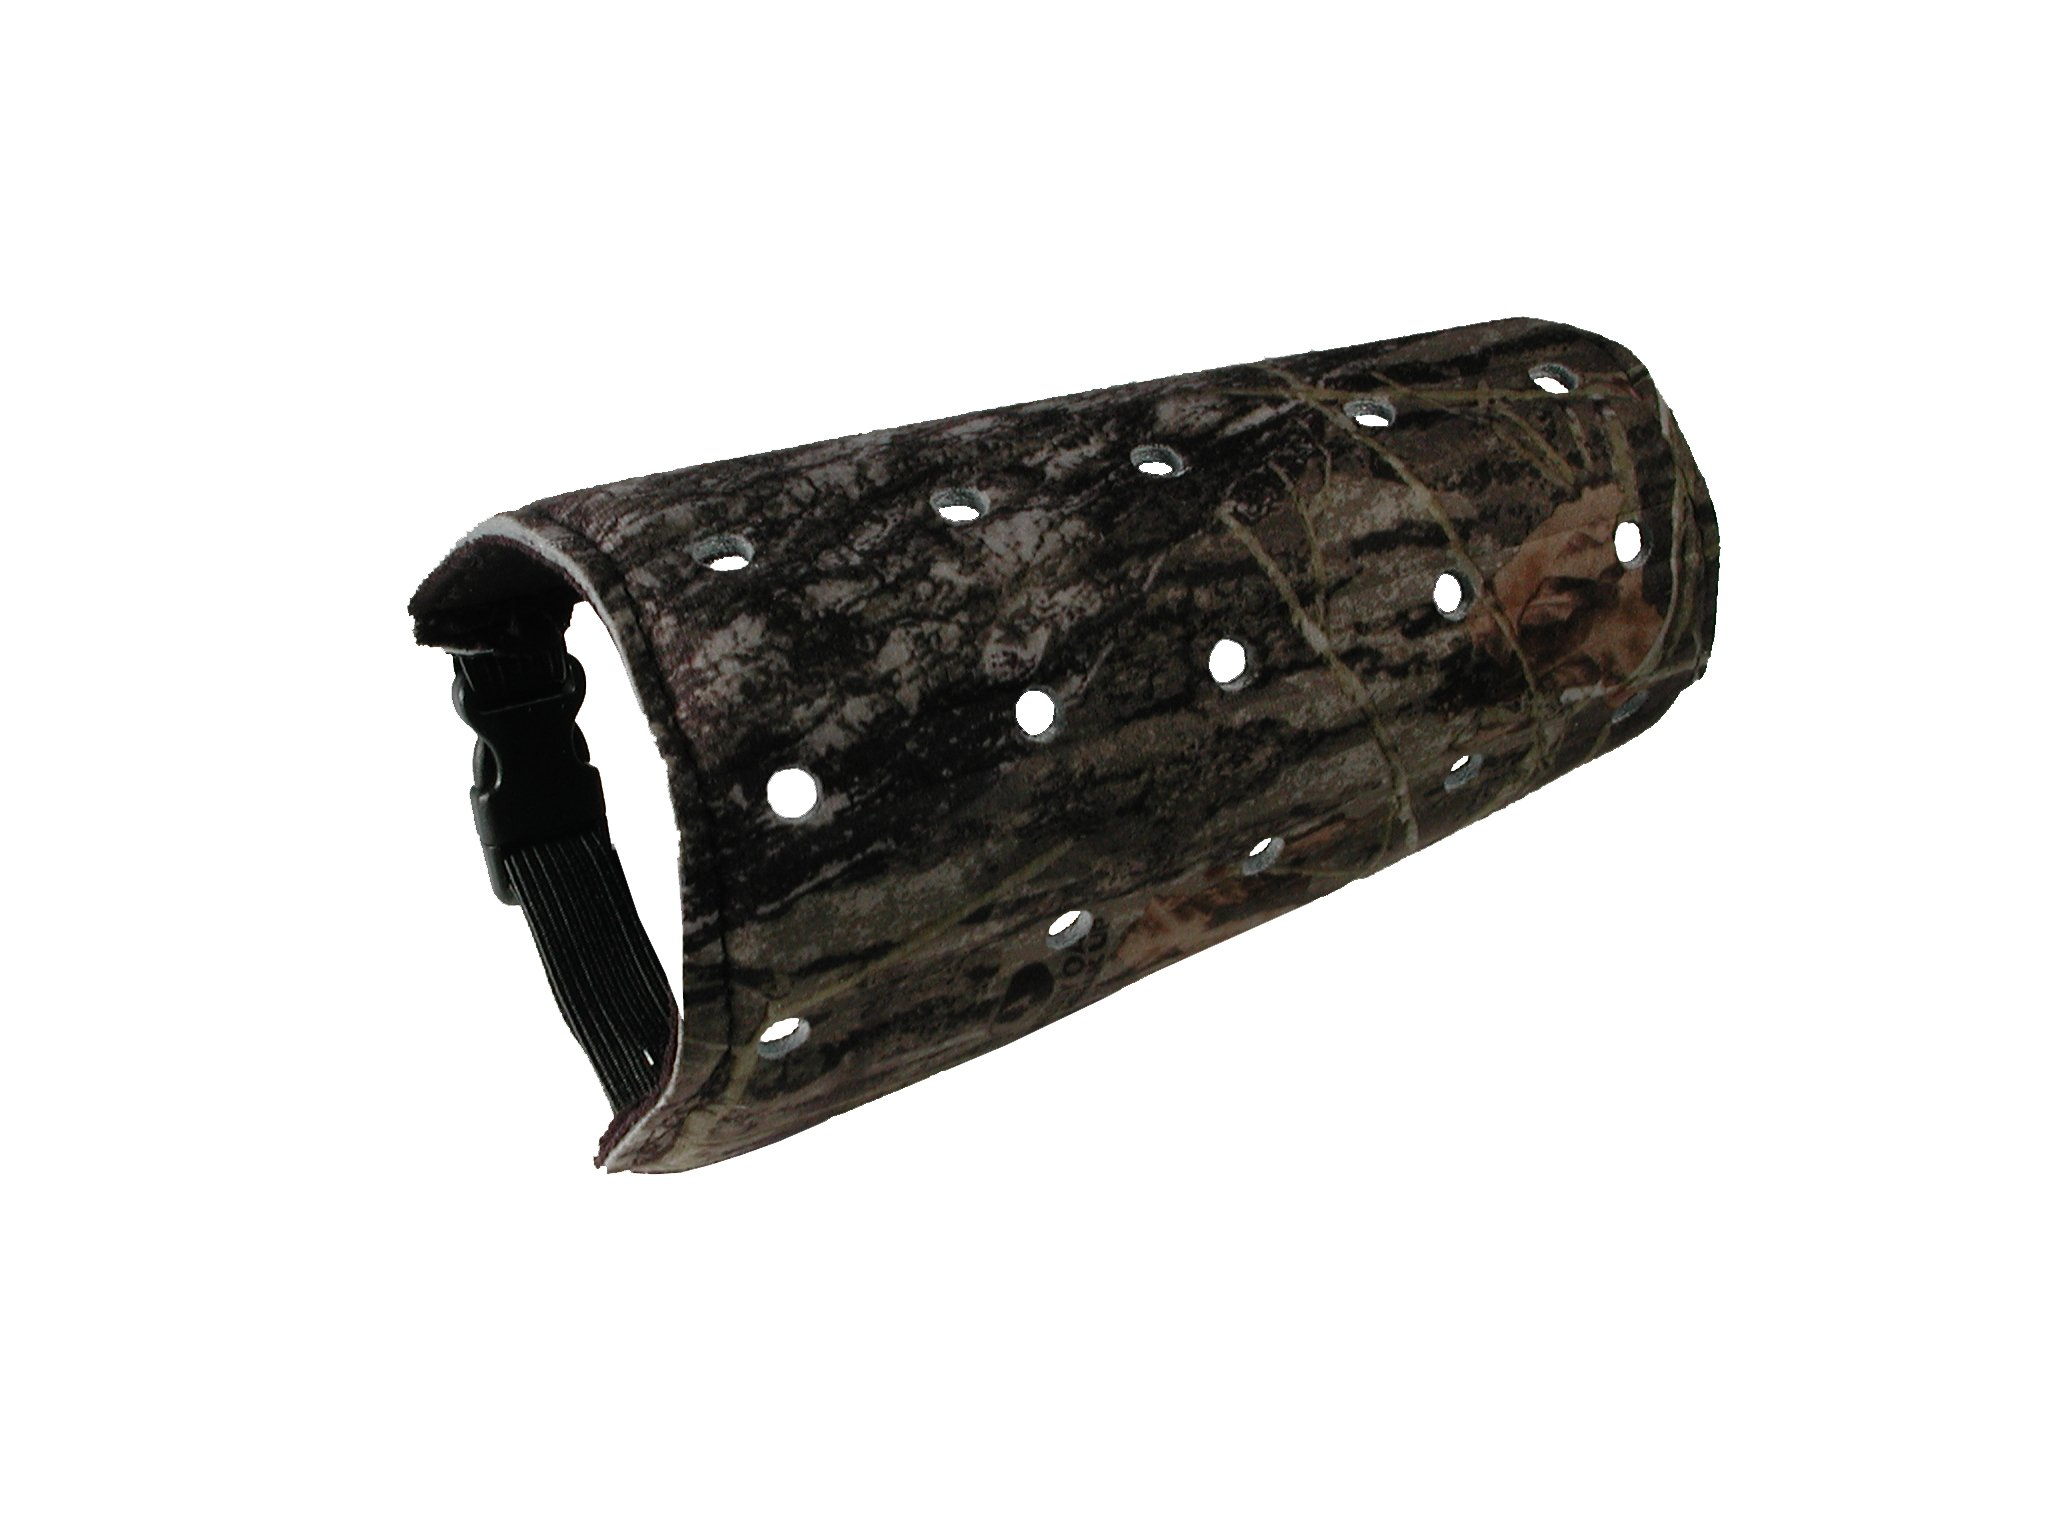 Sportsman's Outdoor Products Tarantula Sleeve Wrap Armguard (Camo) by Sportsman's Outdoor Products